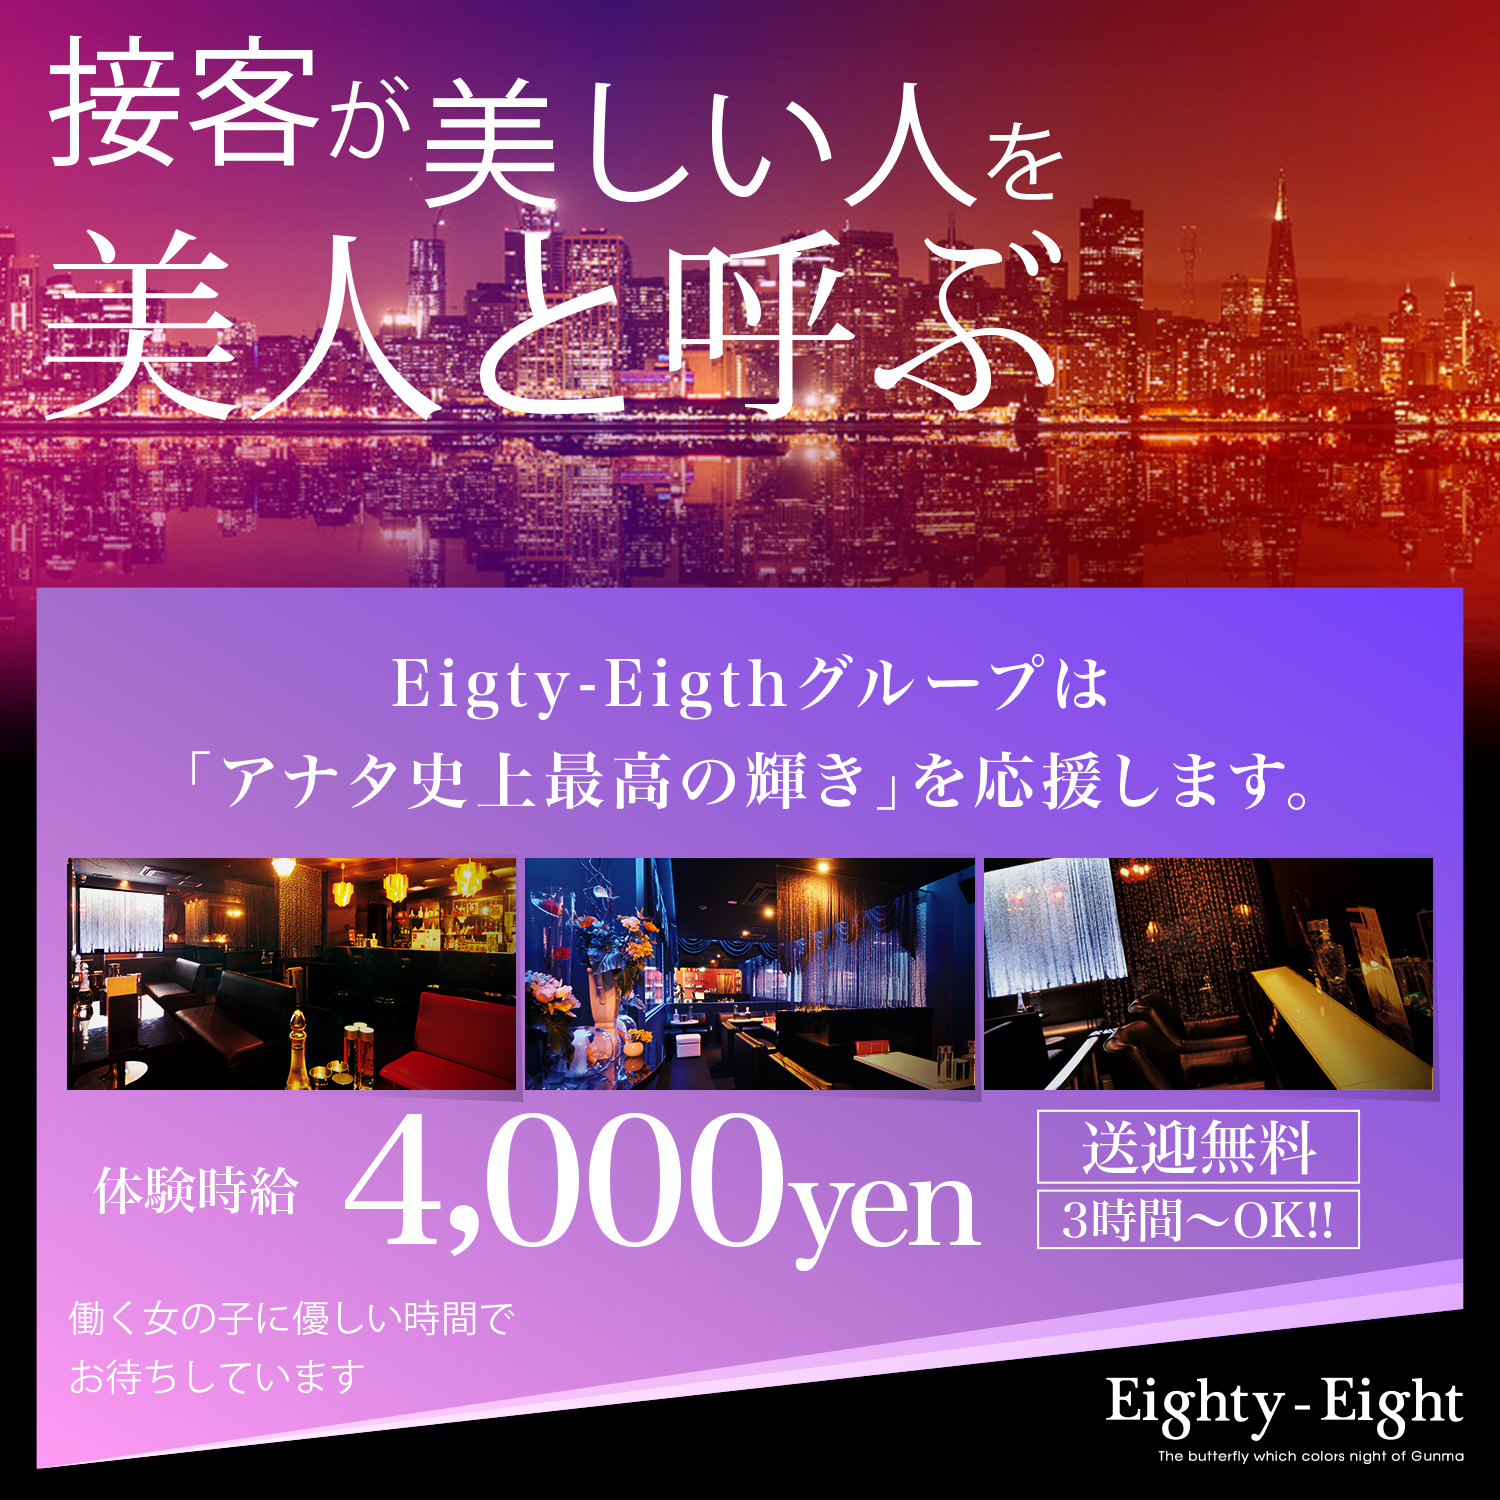 88 Eighty-Eight 求人情報